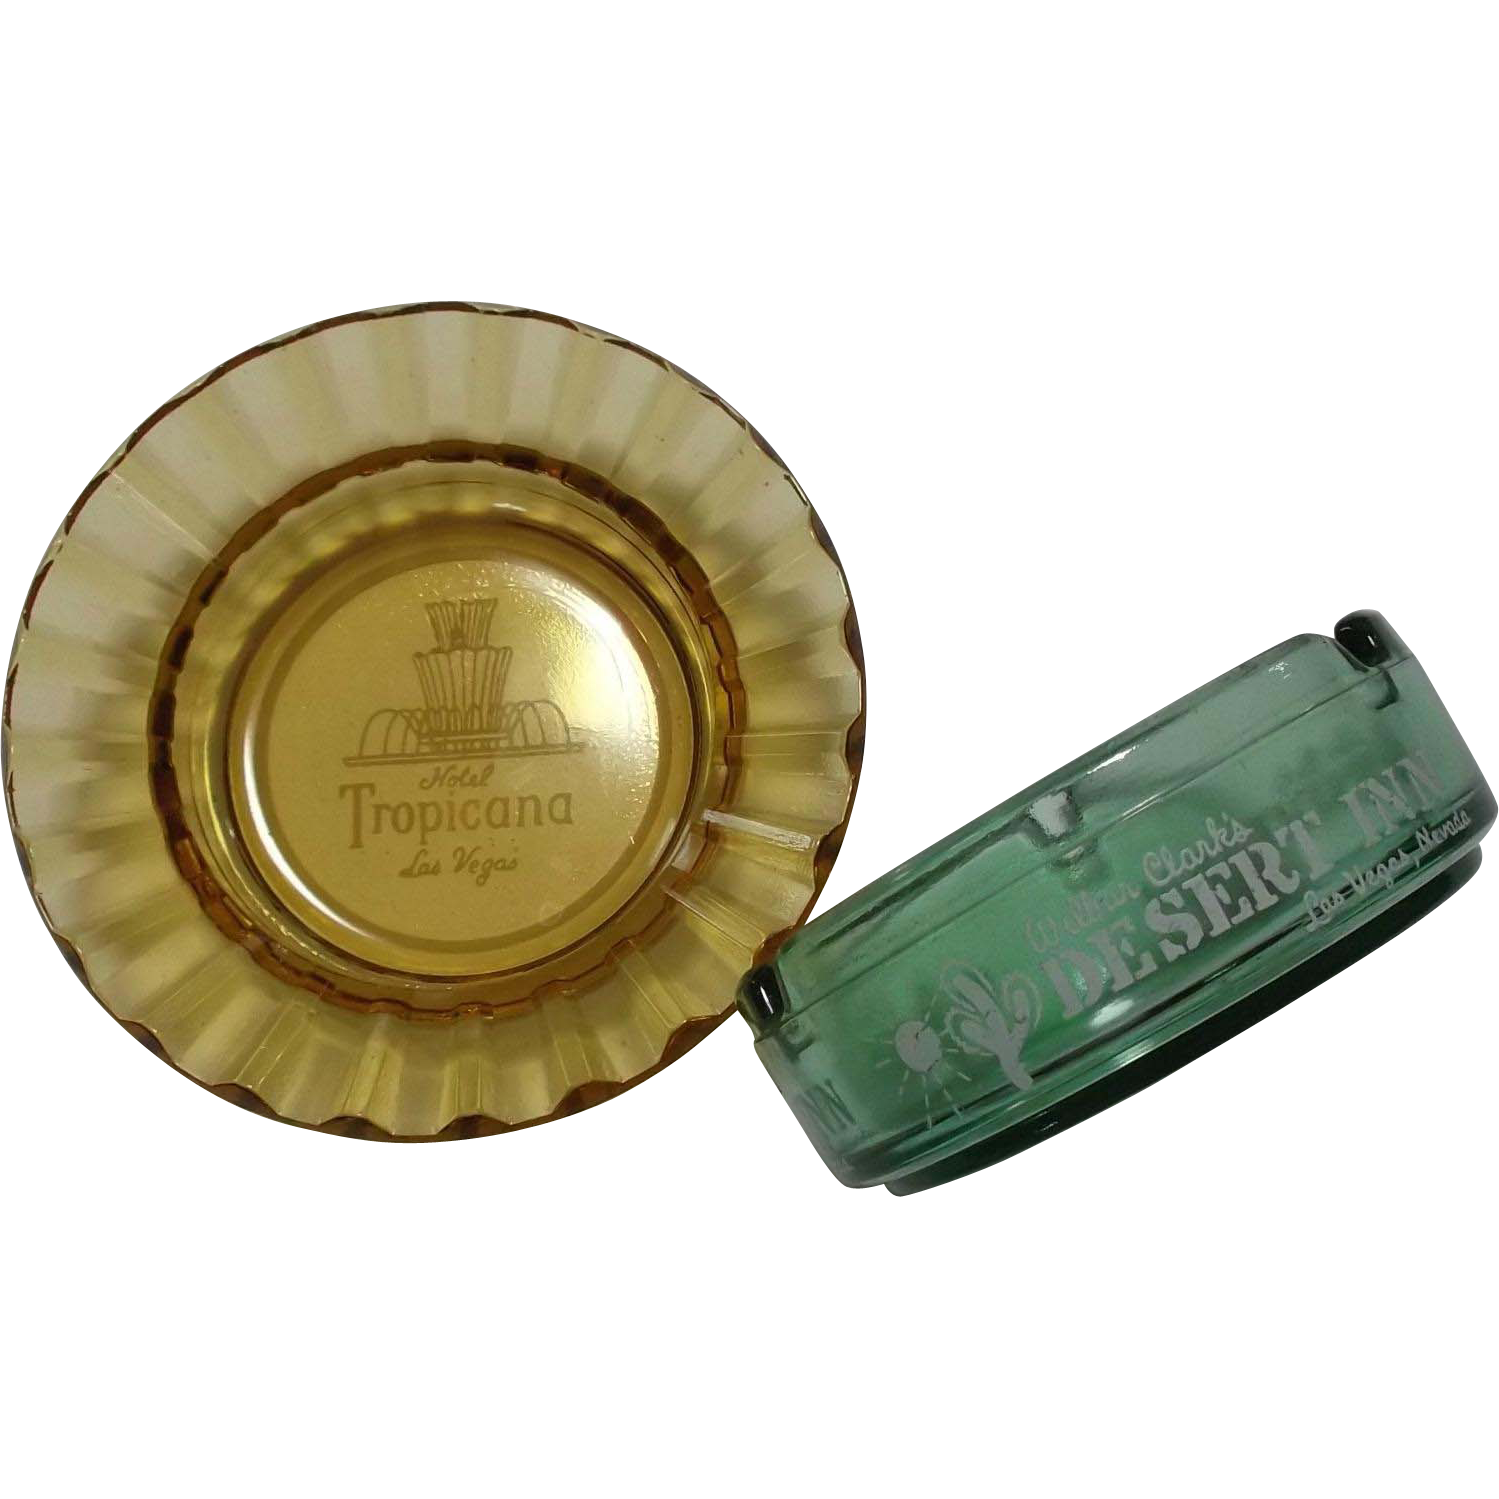 Two Vintage Depression Glass Ashtrays Hotel Tropicana Desert Inn Las Vegas